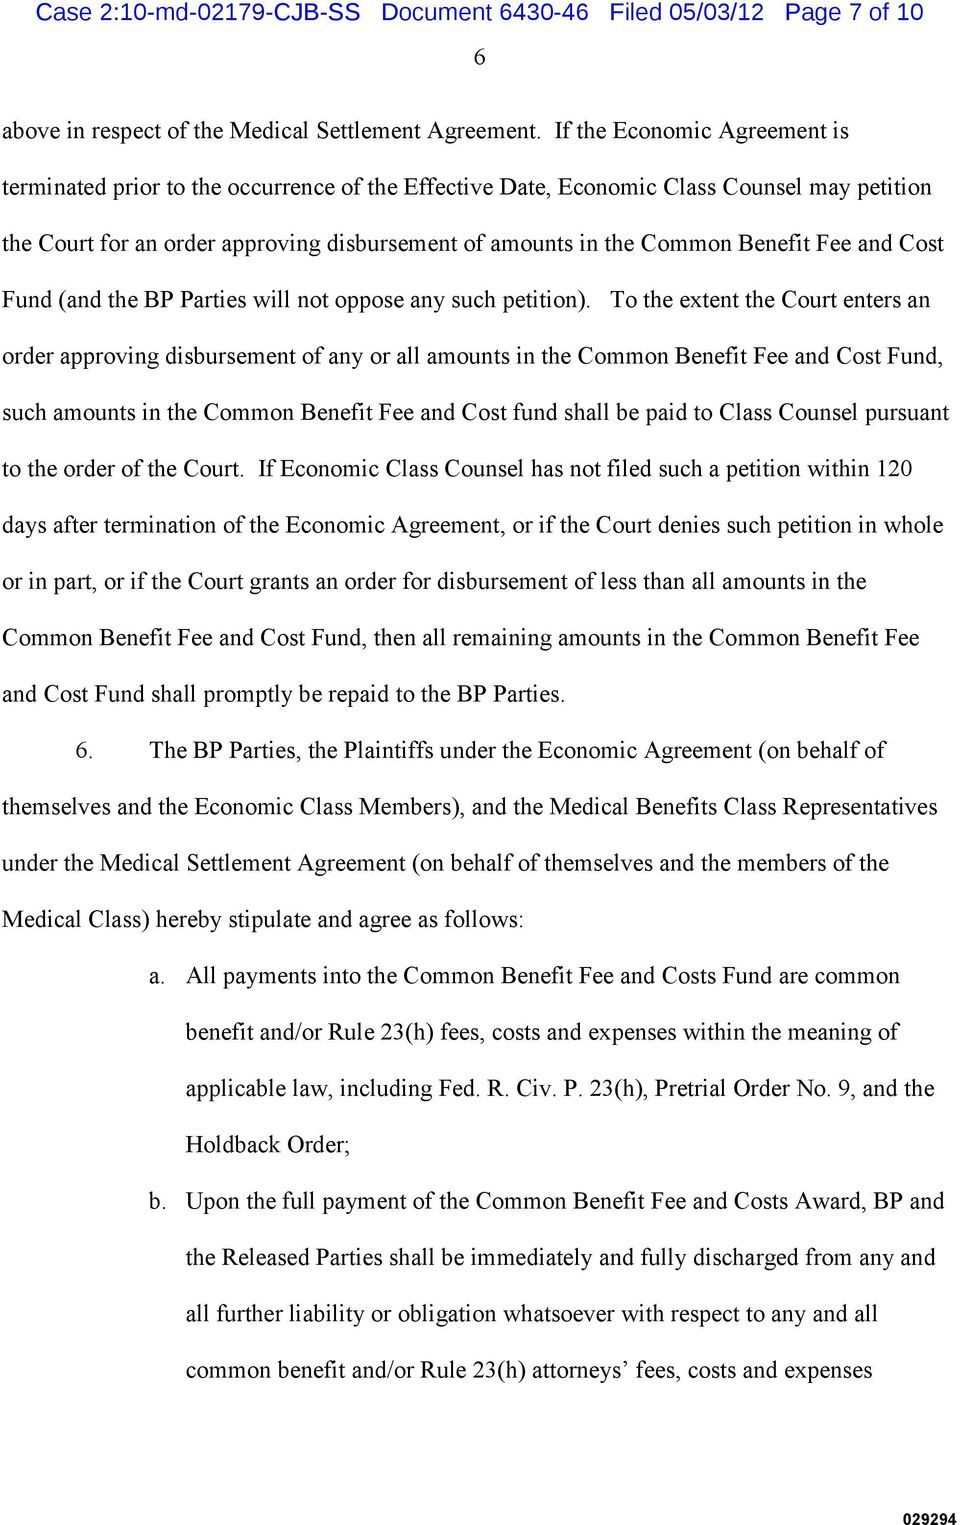 Benefit Fee and Cost Fund (and the BP Parties will not oppose any such petition).